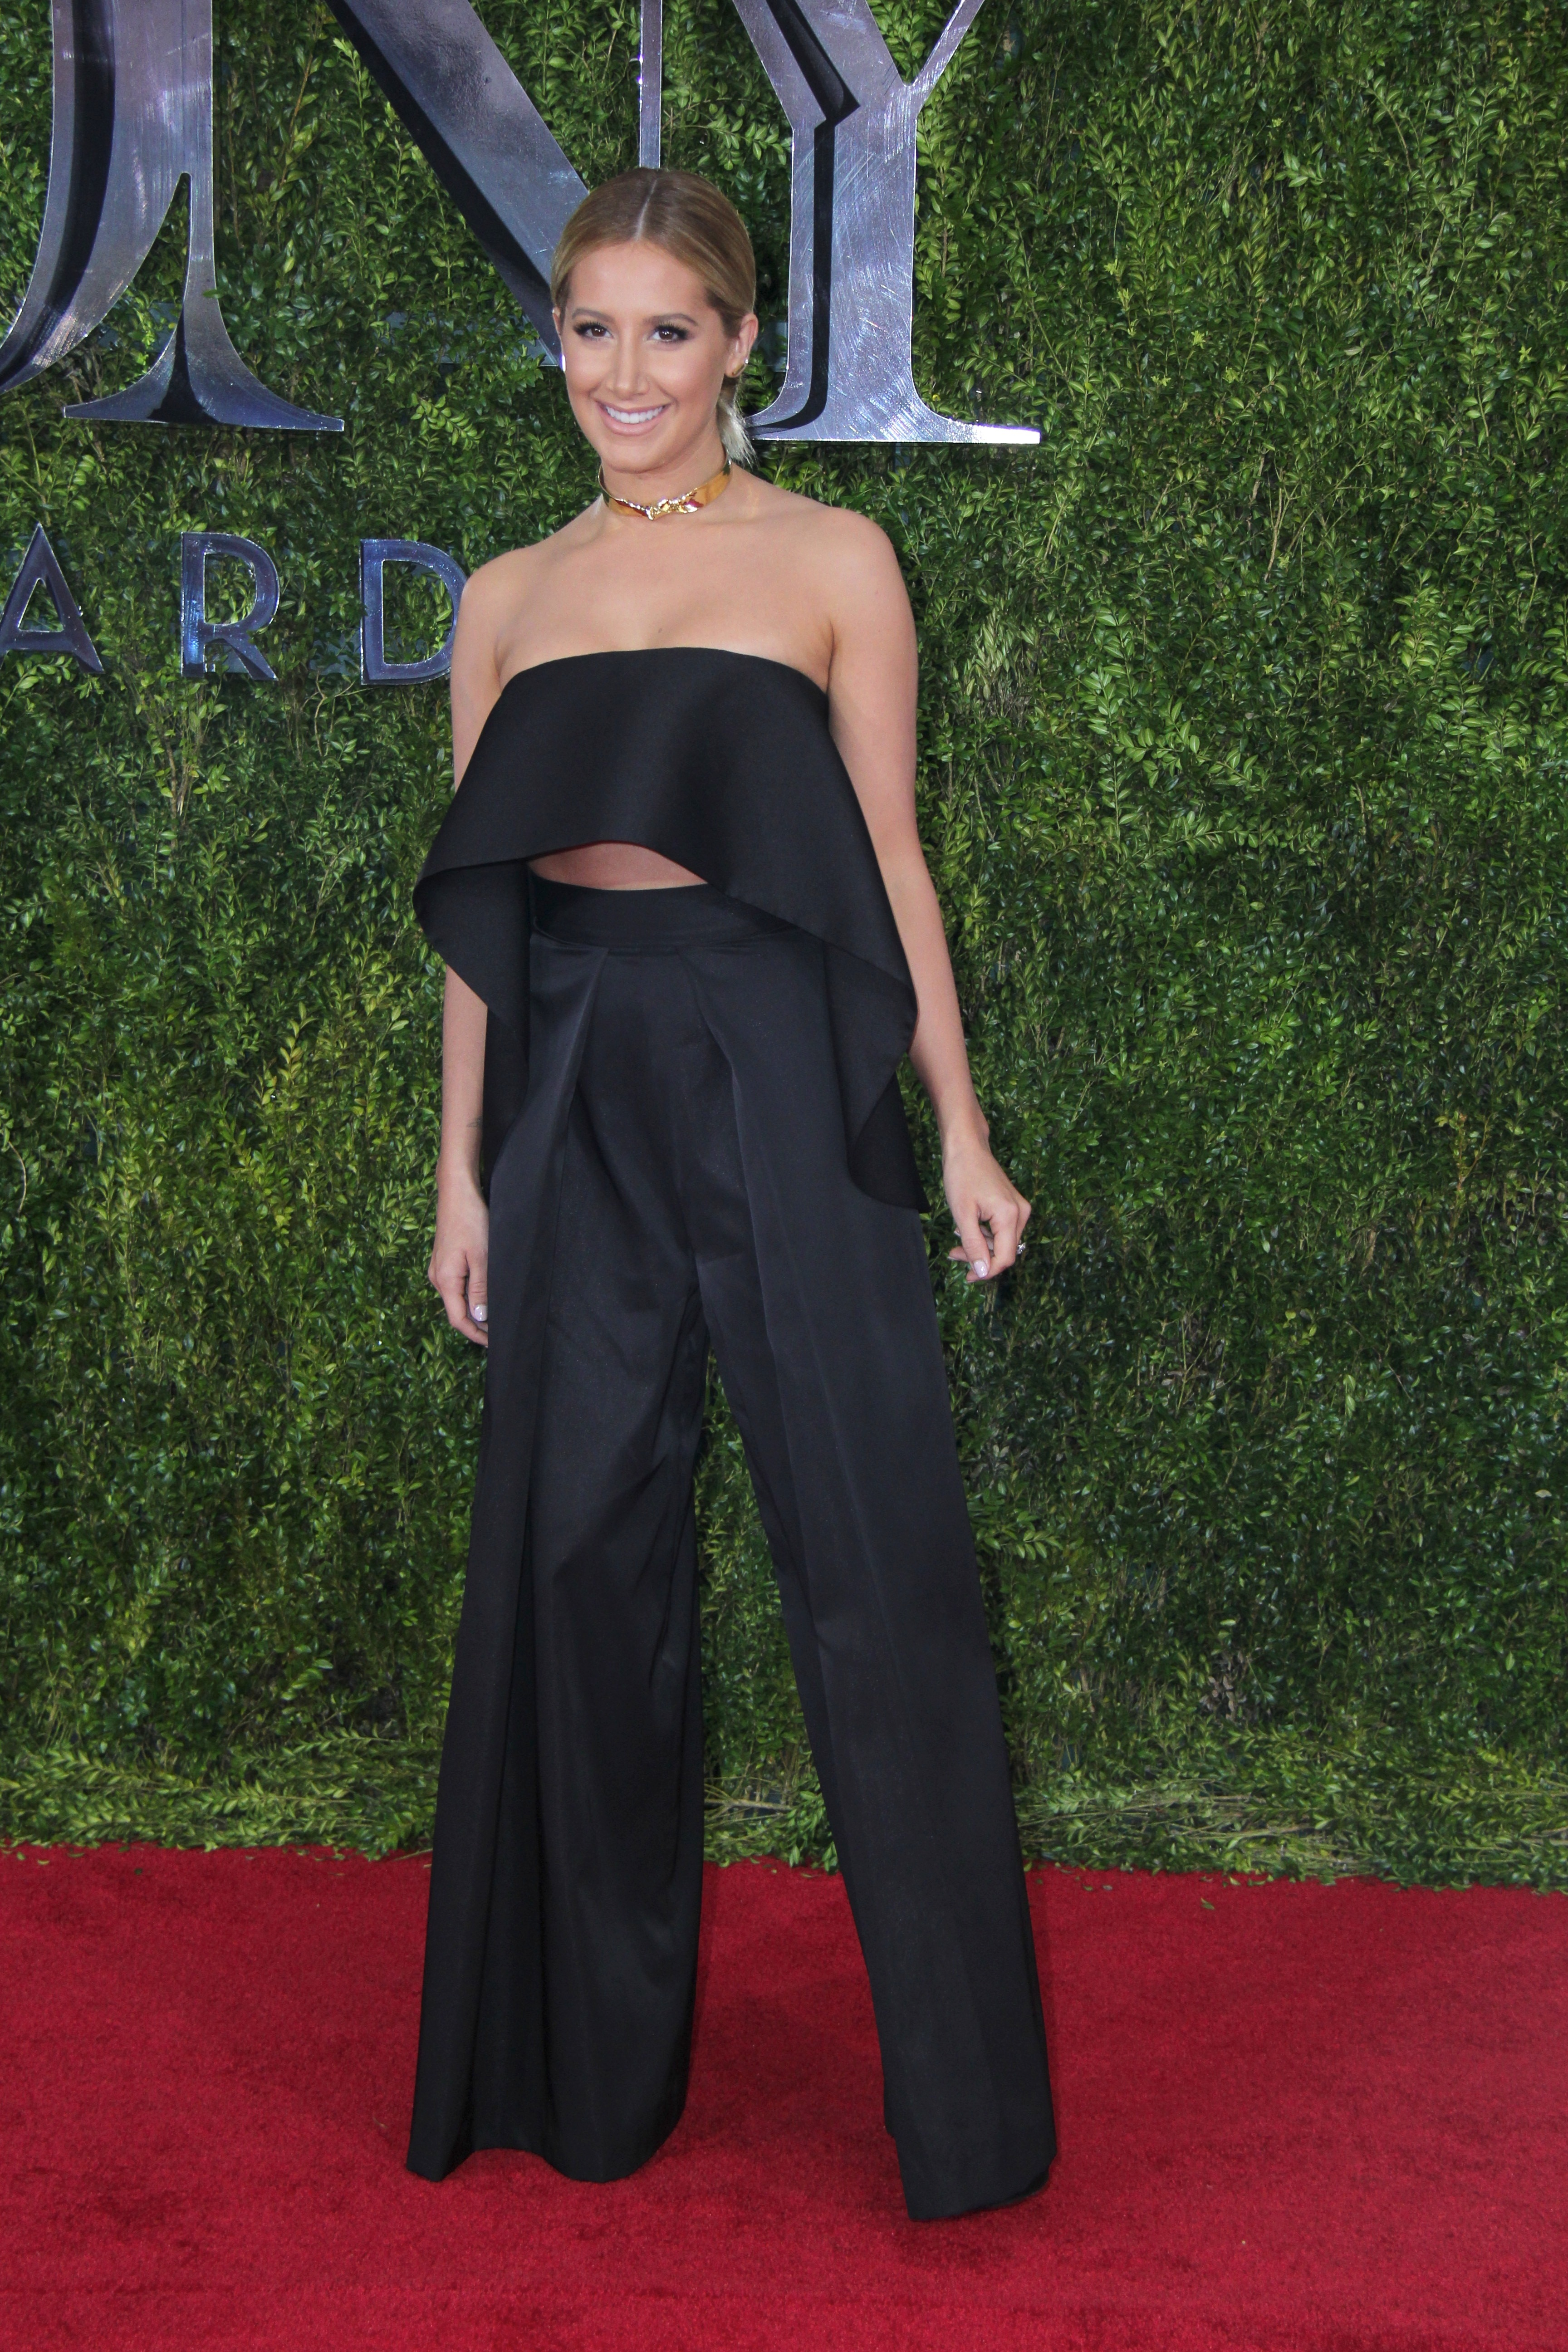 Ashley Tisdale arrives at the 69th annual Tony Awards at Radio City Music Hall in New York City on June 7, 2015.